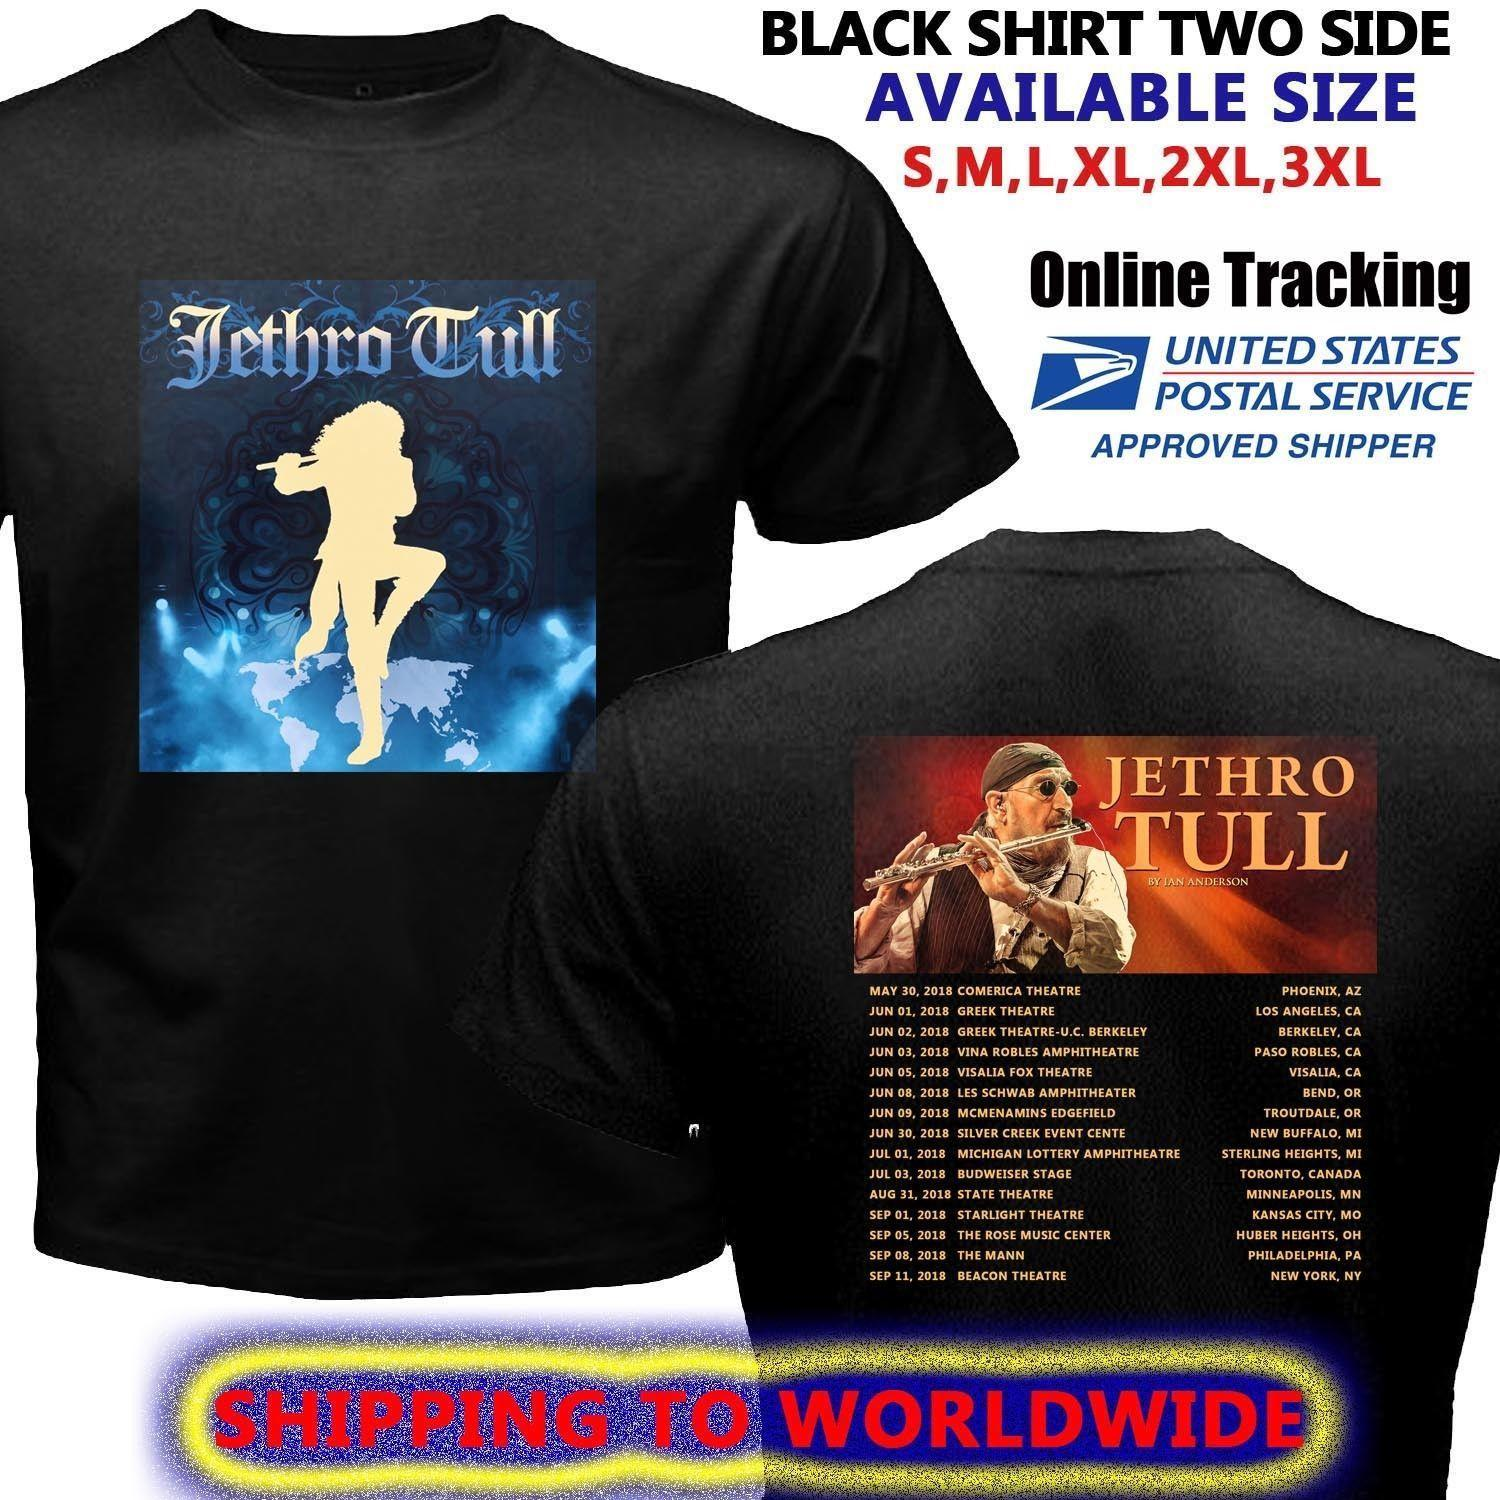 Jethro Tull Best Tour Dates 2018 Black Tee T Shirt Size S To 5xl